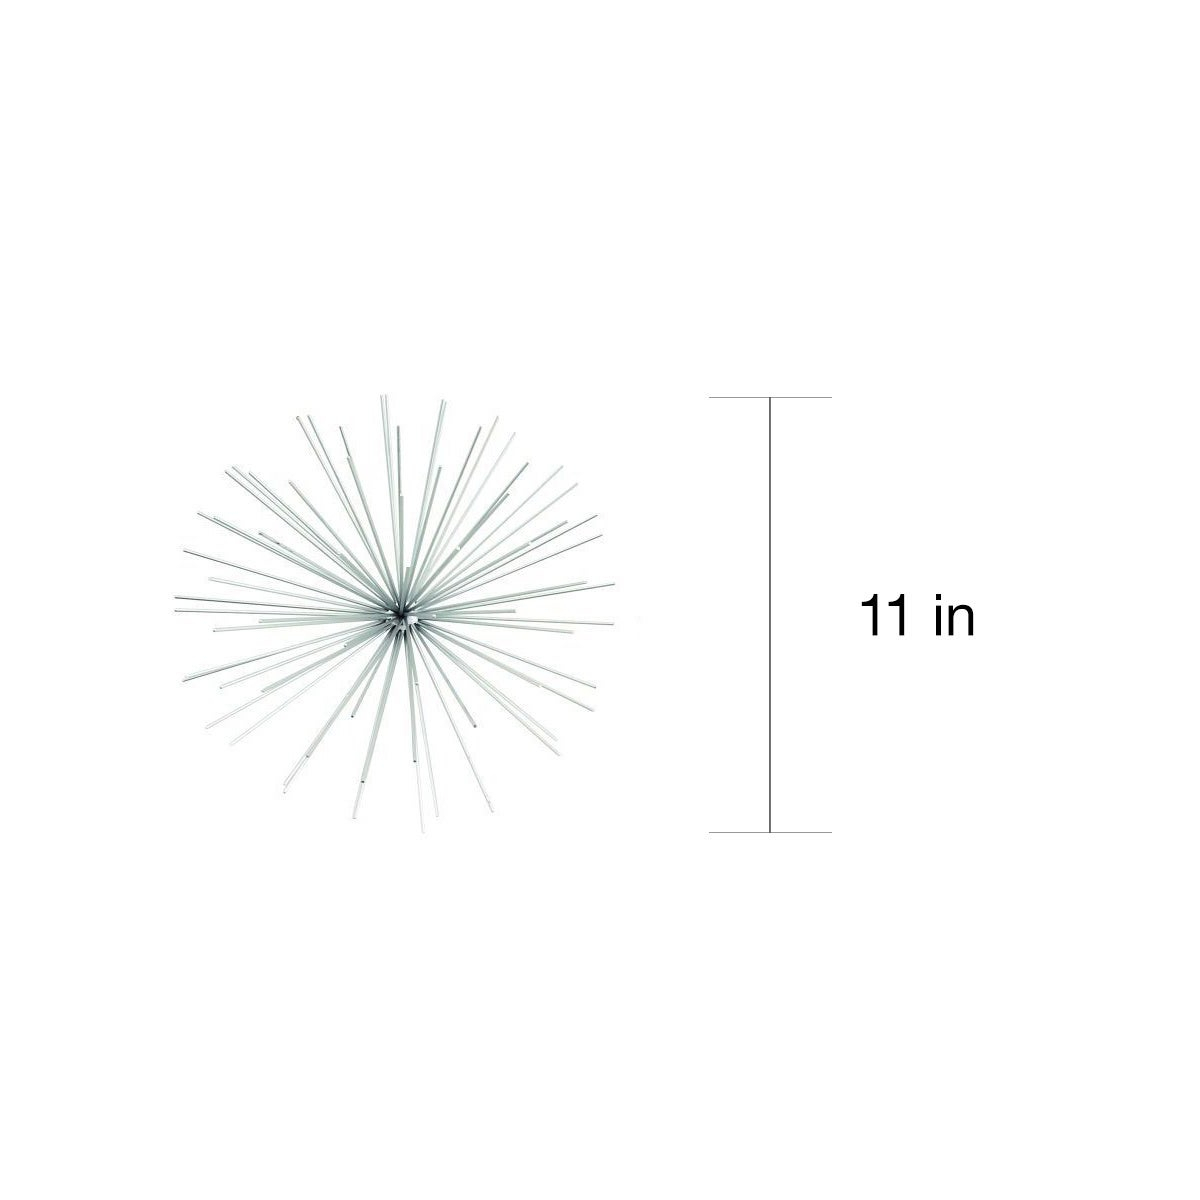 "Contemporary Style 3d Round Silver Metal Starburst Wall Decor Sculptures Set Of 3 – 6"", 9"", 11"" Regarding Set Of 3 Contemporary 6, 9, And 11 Inch Gold Tin Starburst Sculptures (View 10 of 30)"